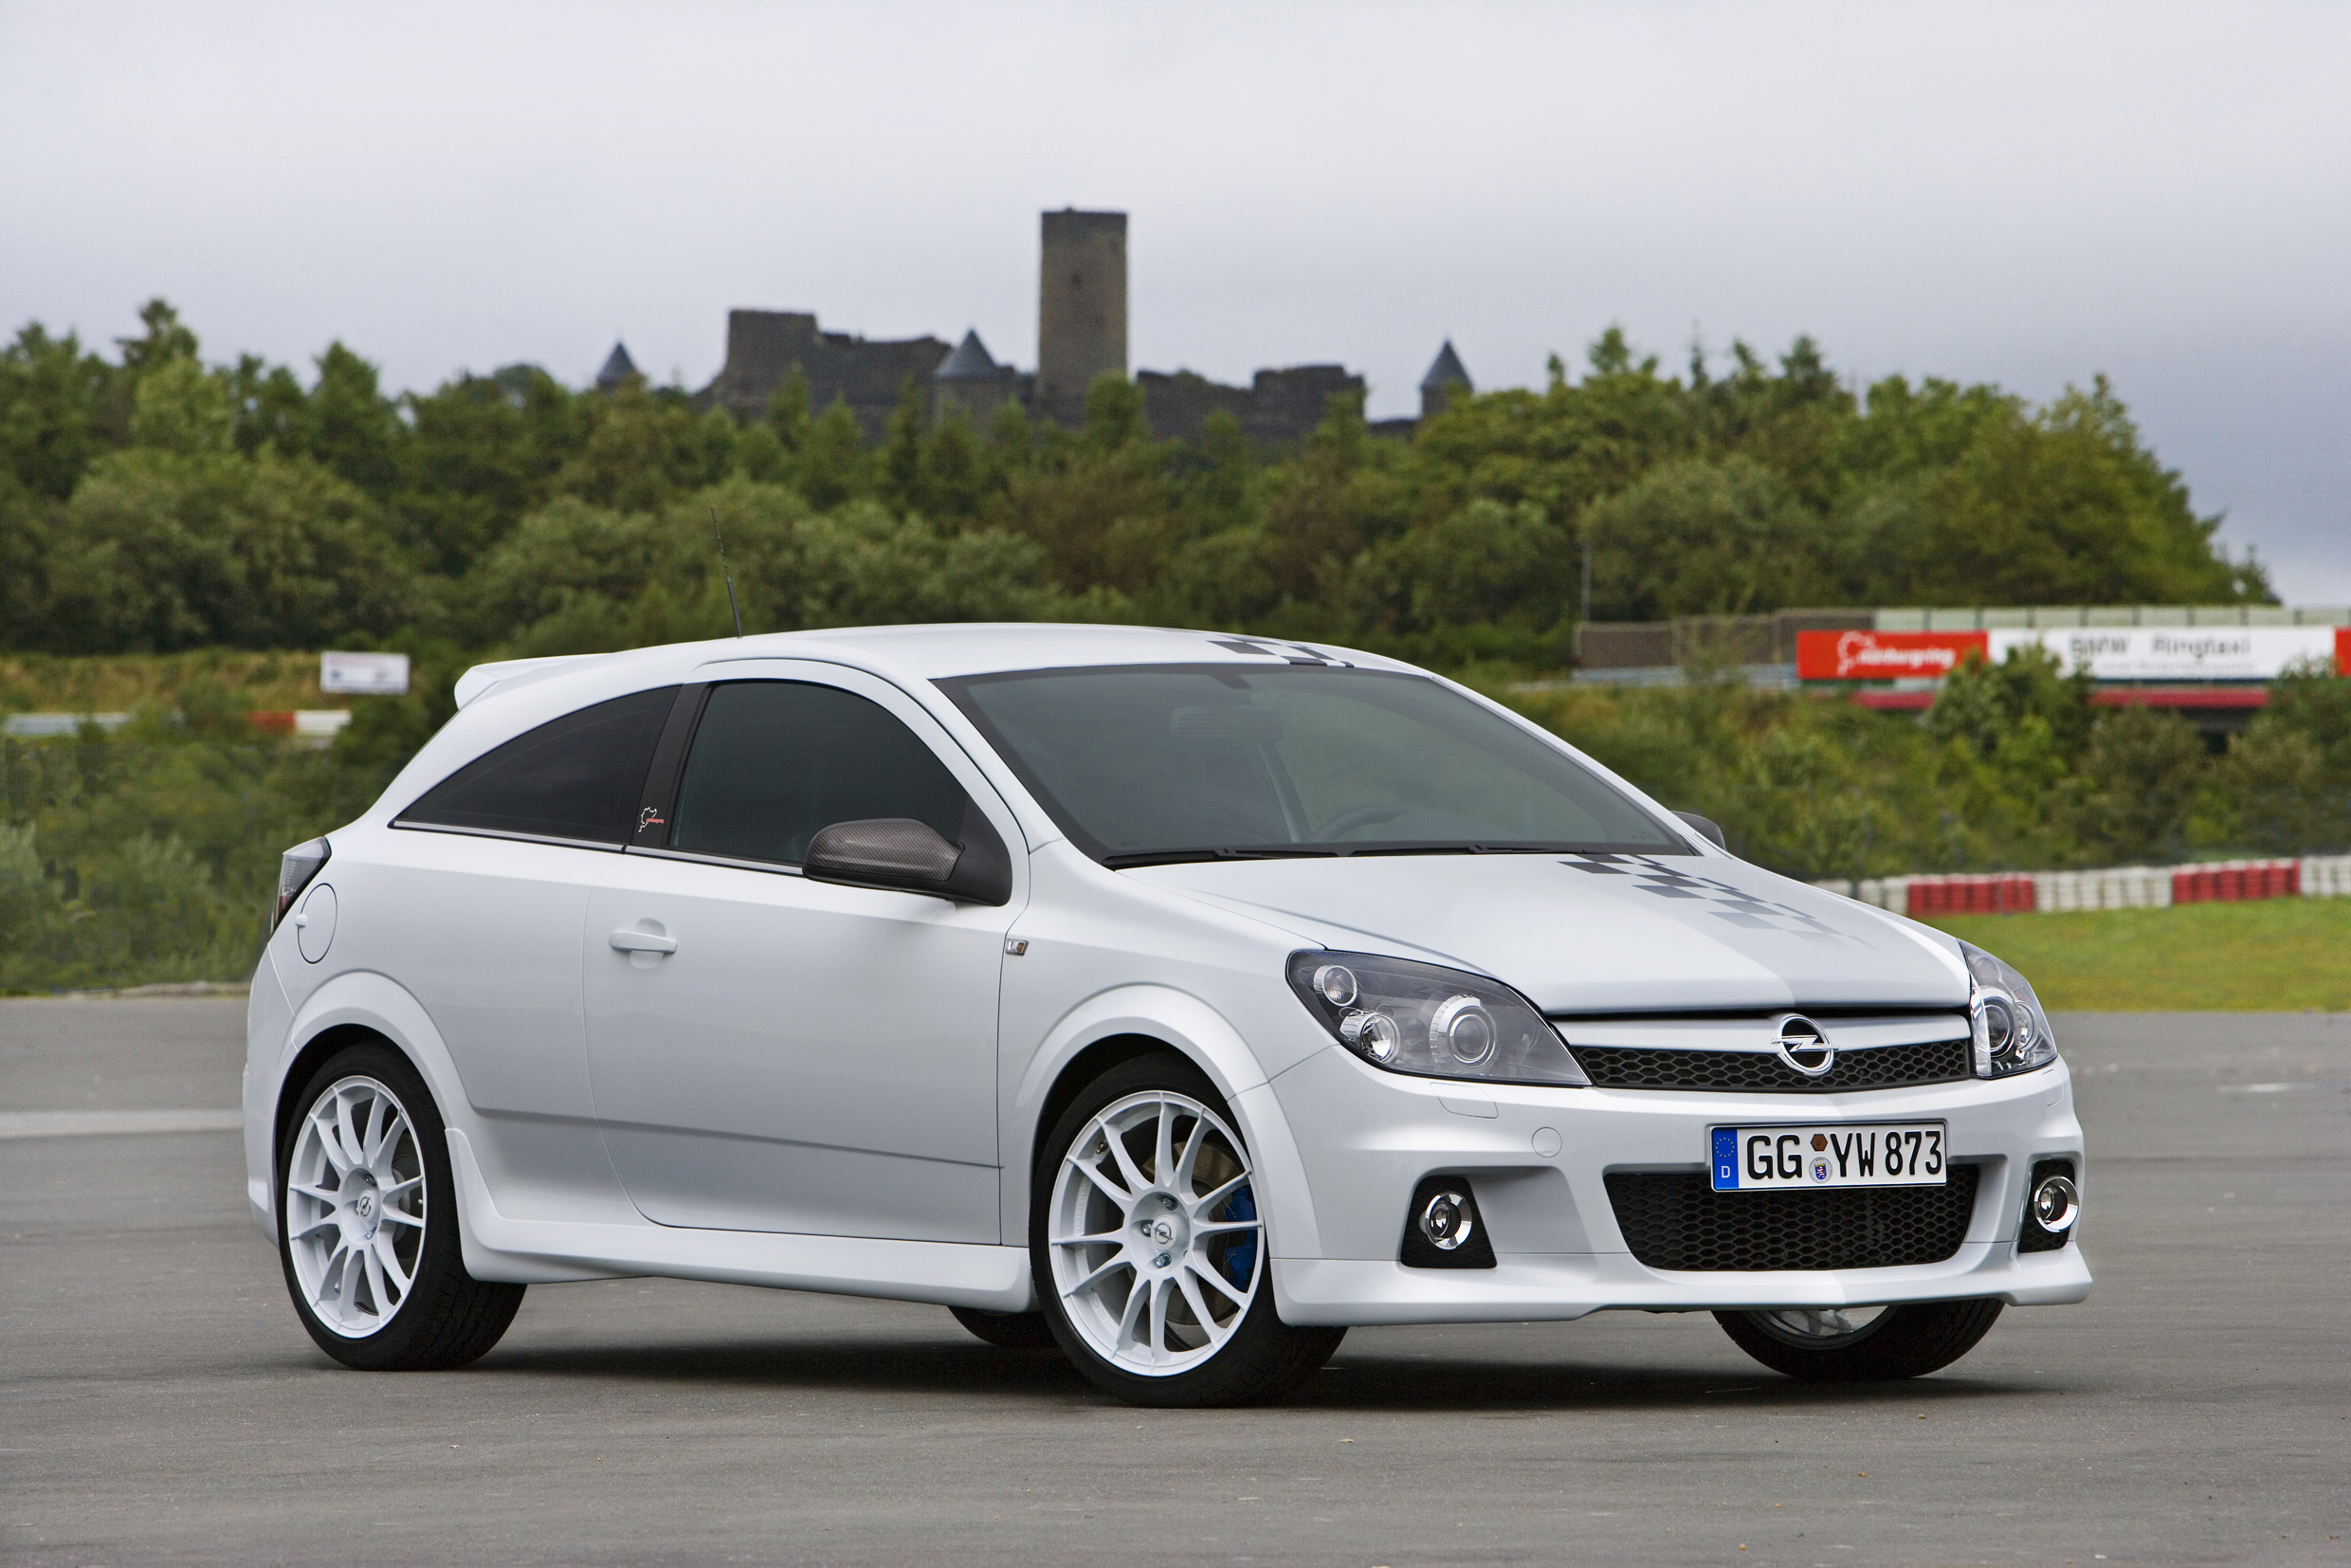 opel astra opc n rburgring edition. Black Bedroom Furniture Sets. Home Design Ideas